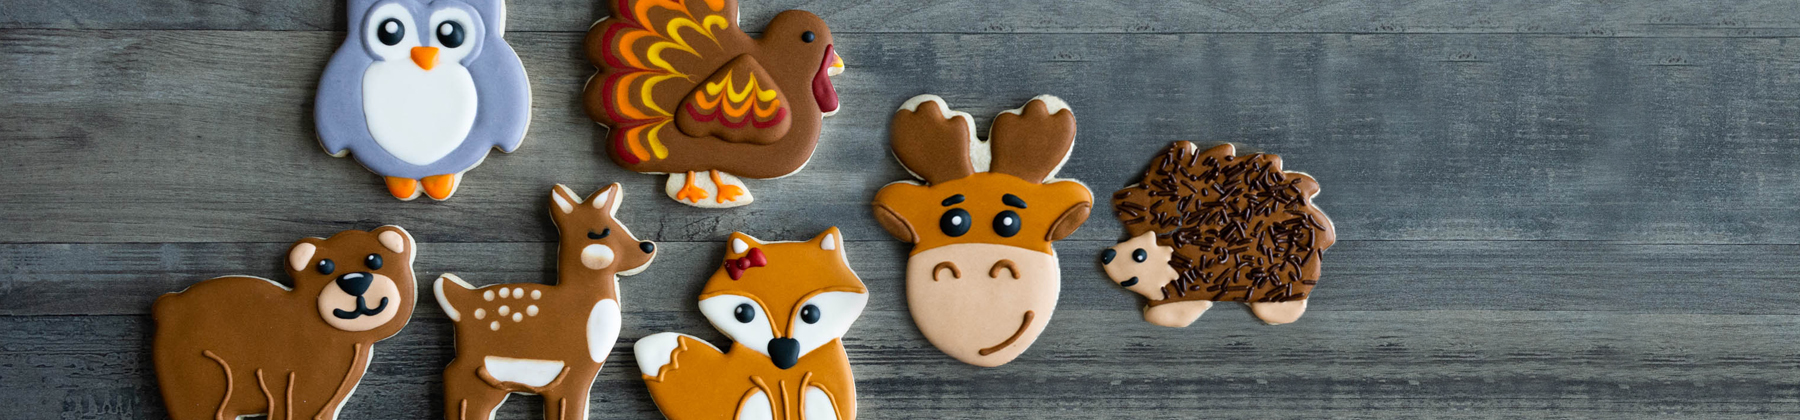 Decorated sugar cookies created with animal shape cookie cutters.